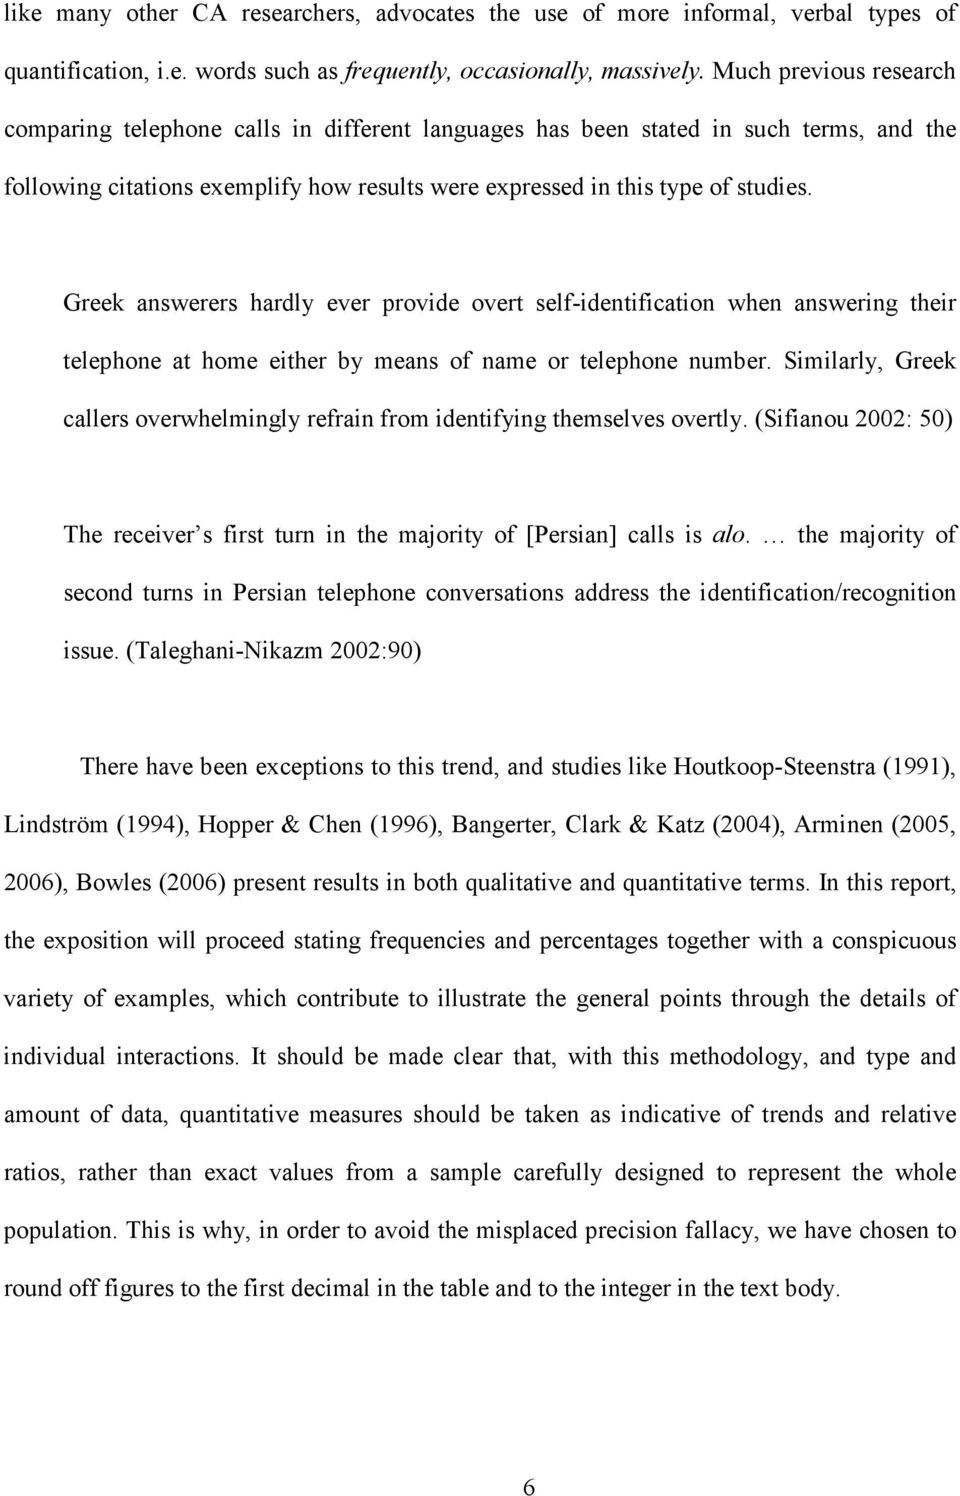 Greek answerers hardly ever provide overt self-identification when answering their telephone at home either by means of name or telephone number.